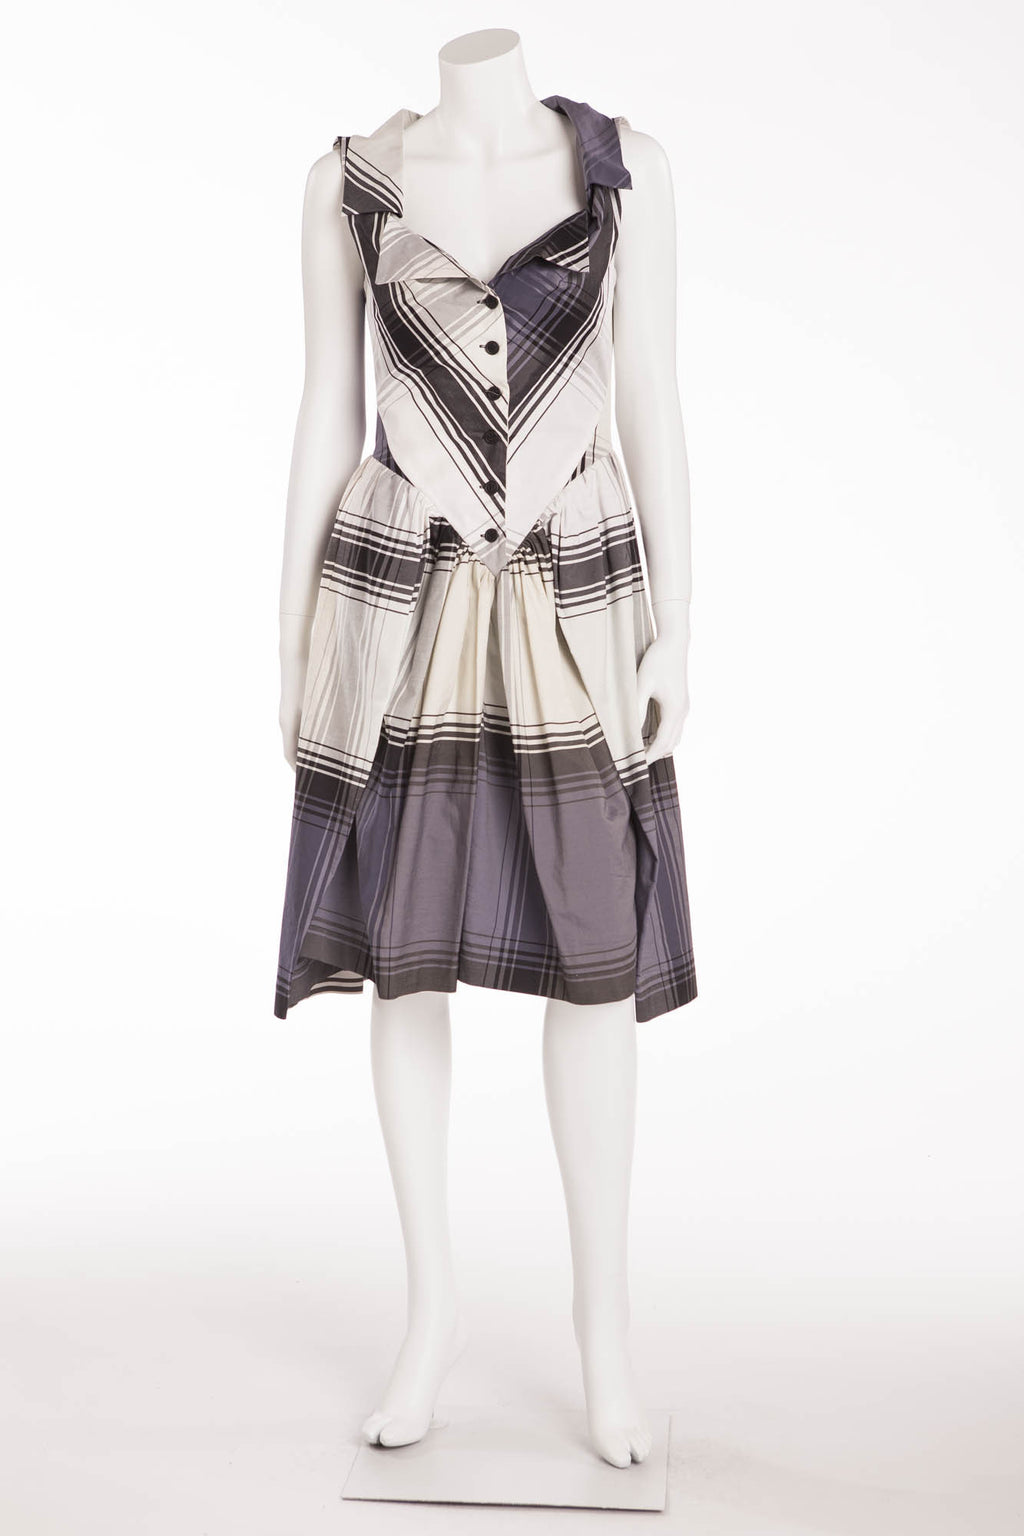 Vivienne Westwood - Sleeveless Gray, Cream and White Plaid Dress - IT 42